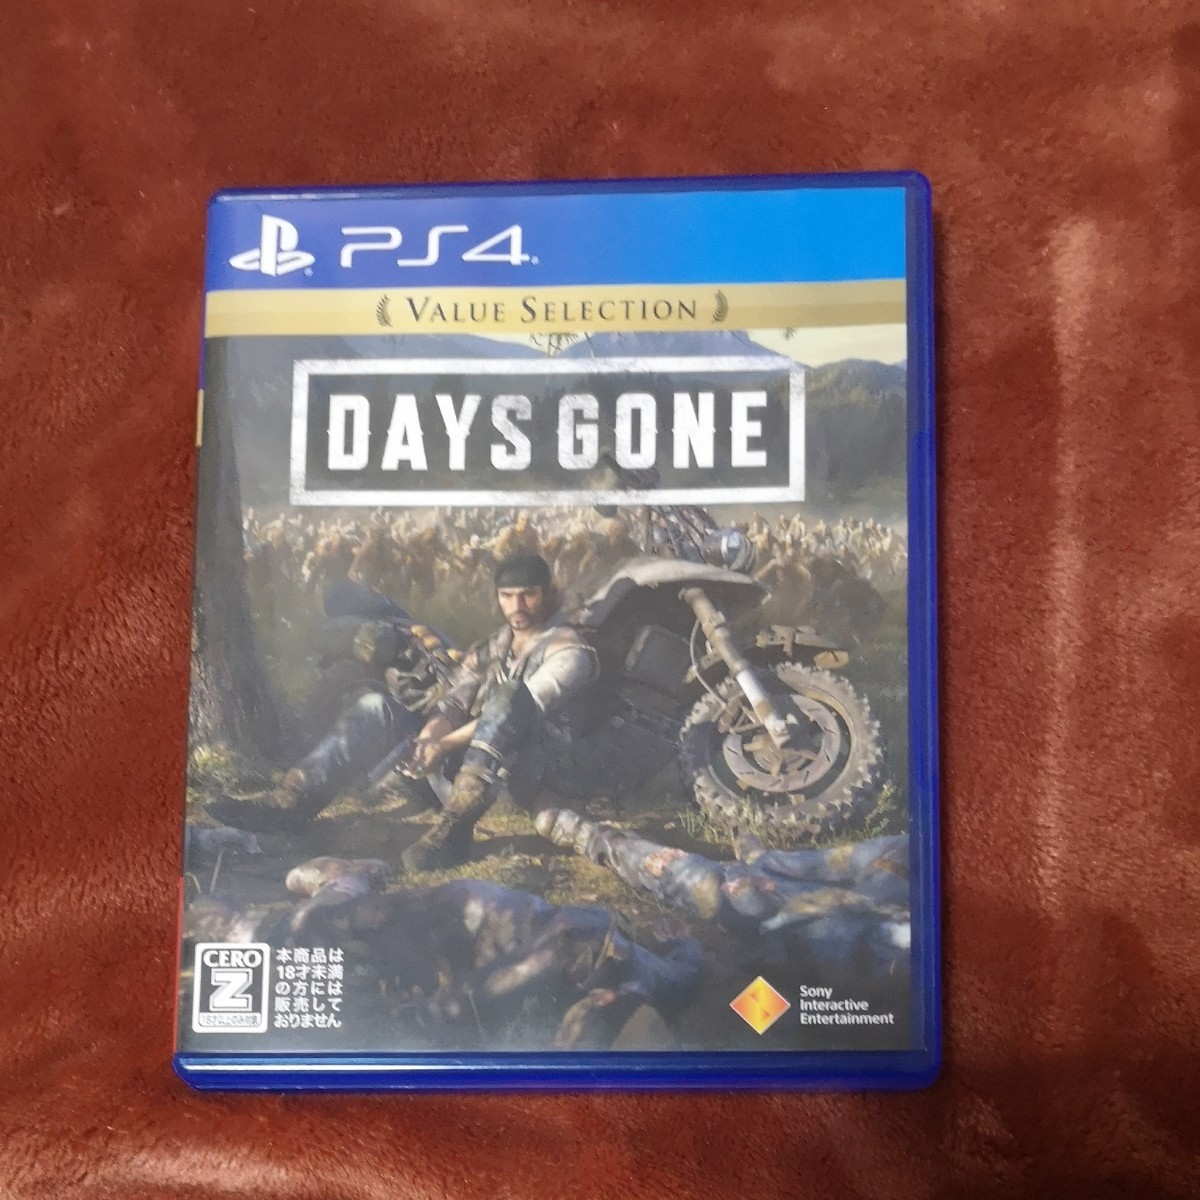 【PS4】 Days Gone [Value Selection]  デイズ ゴーン